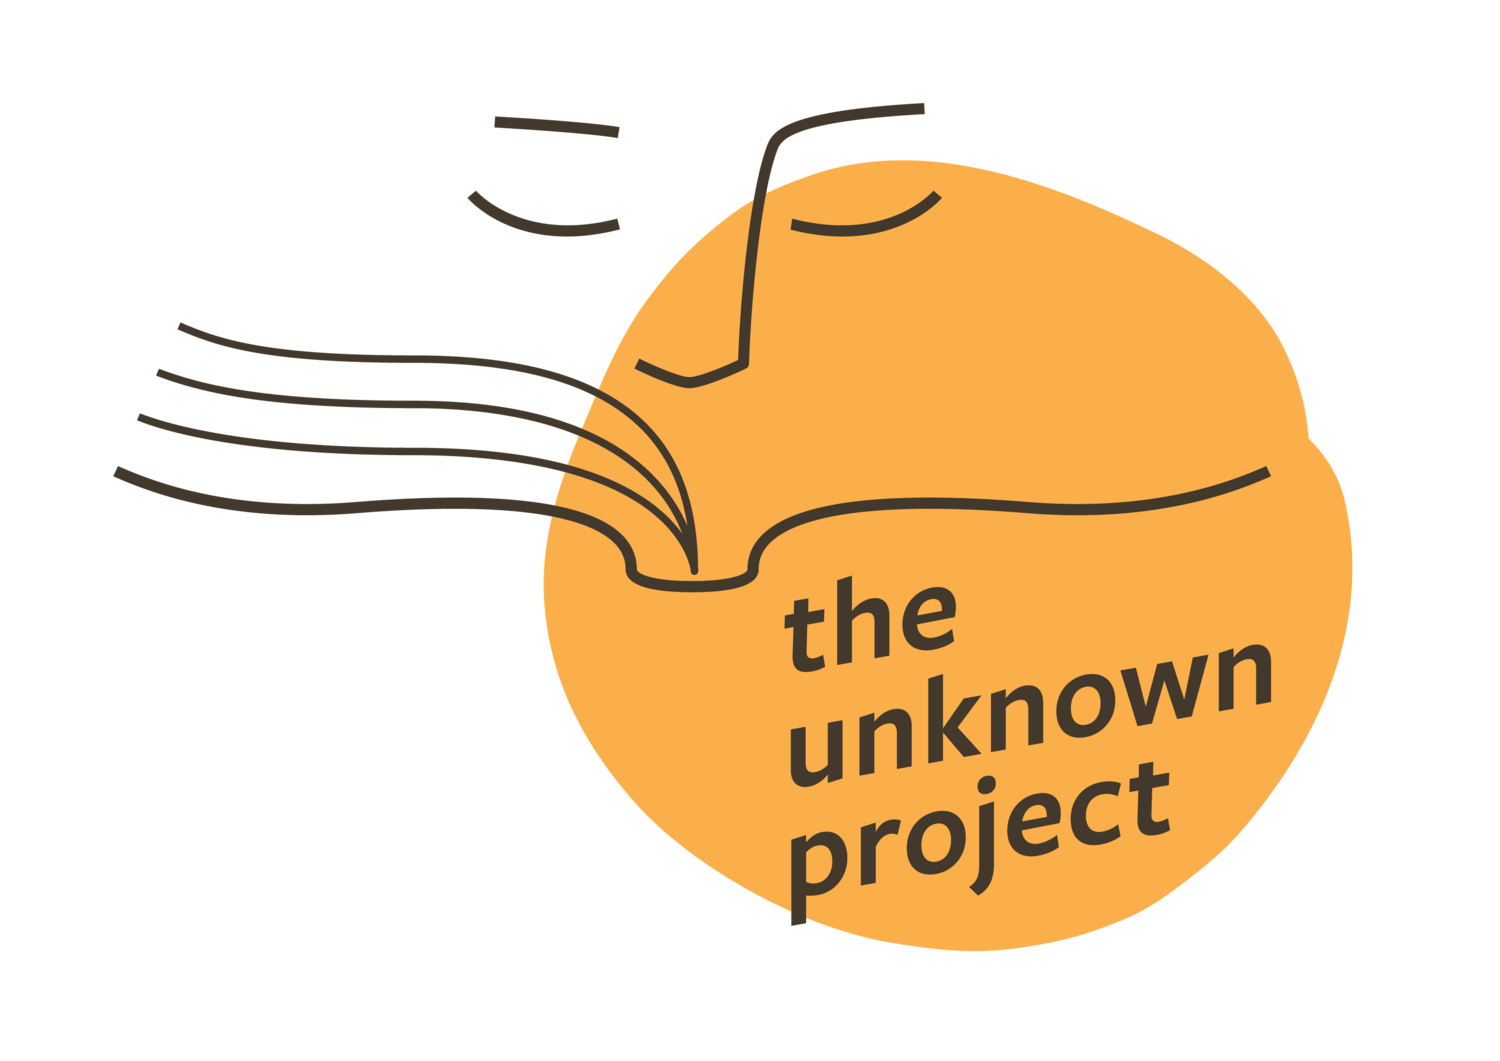 The Unknown Project